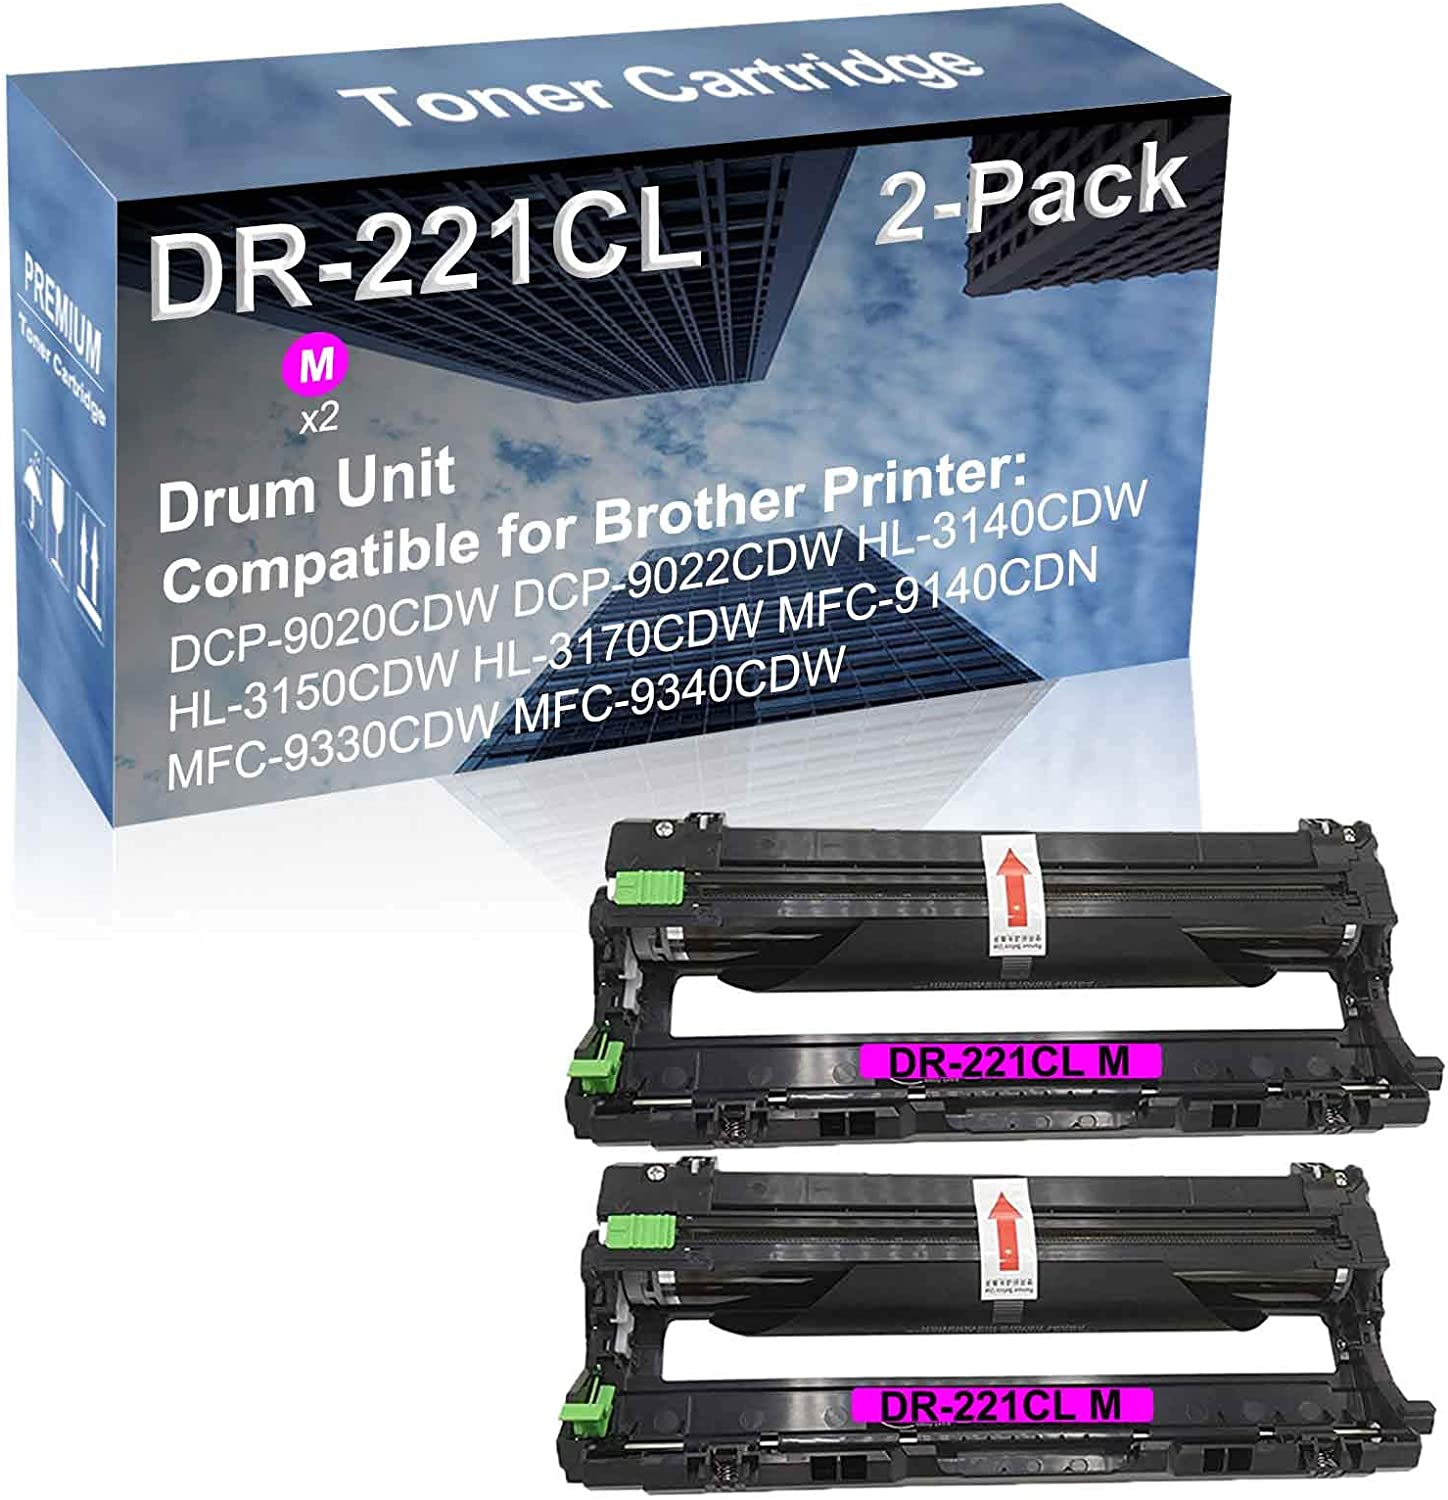 2-Pack Magenta Compatible Superior High Capacity DR-221CL OFFicial mail order Drum DR221